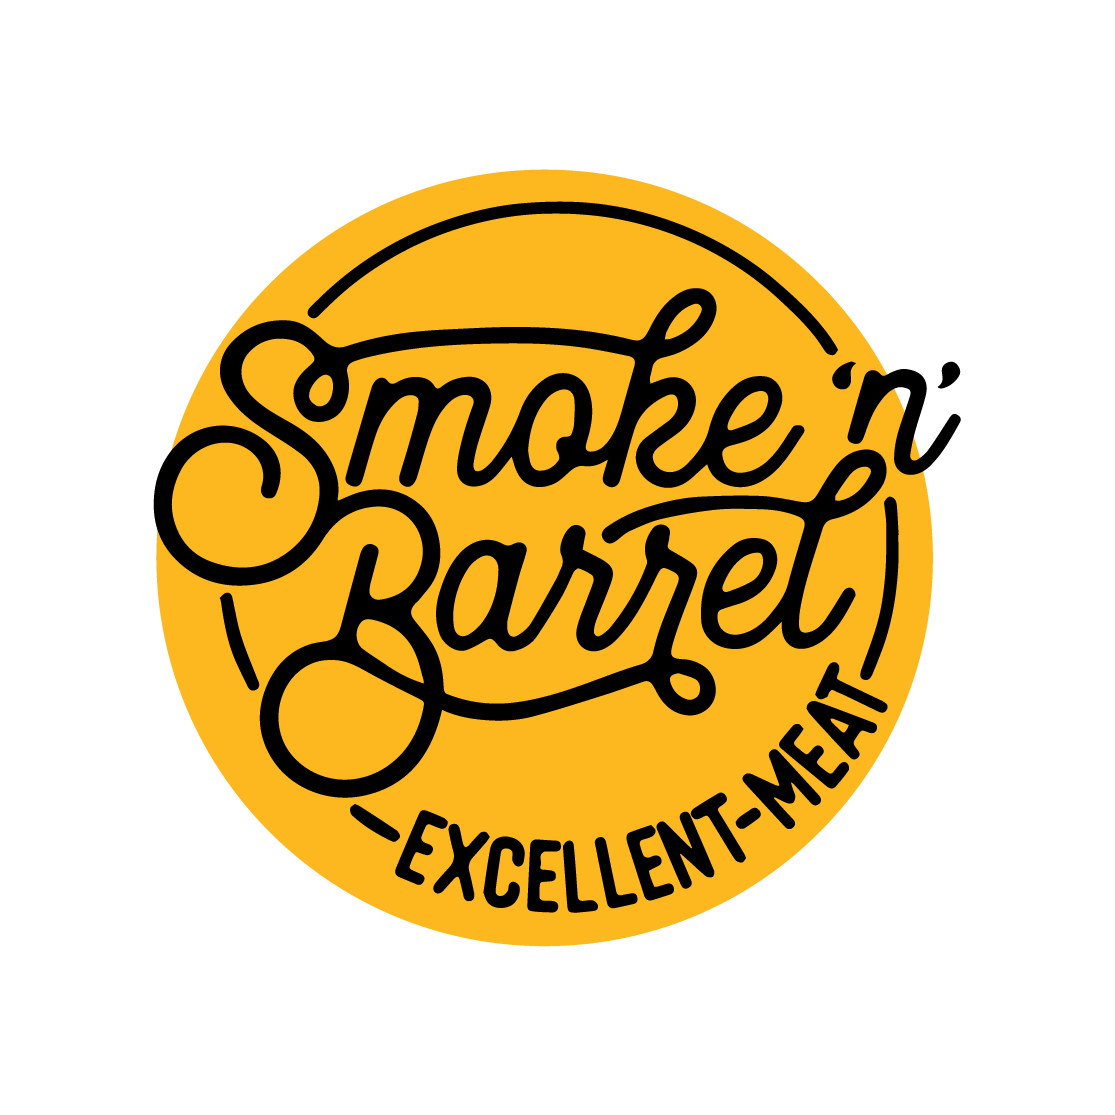 Smoke 'n Barrel